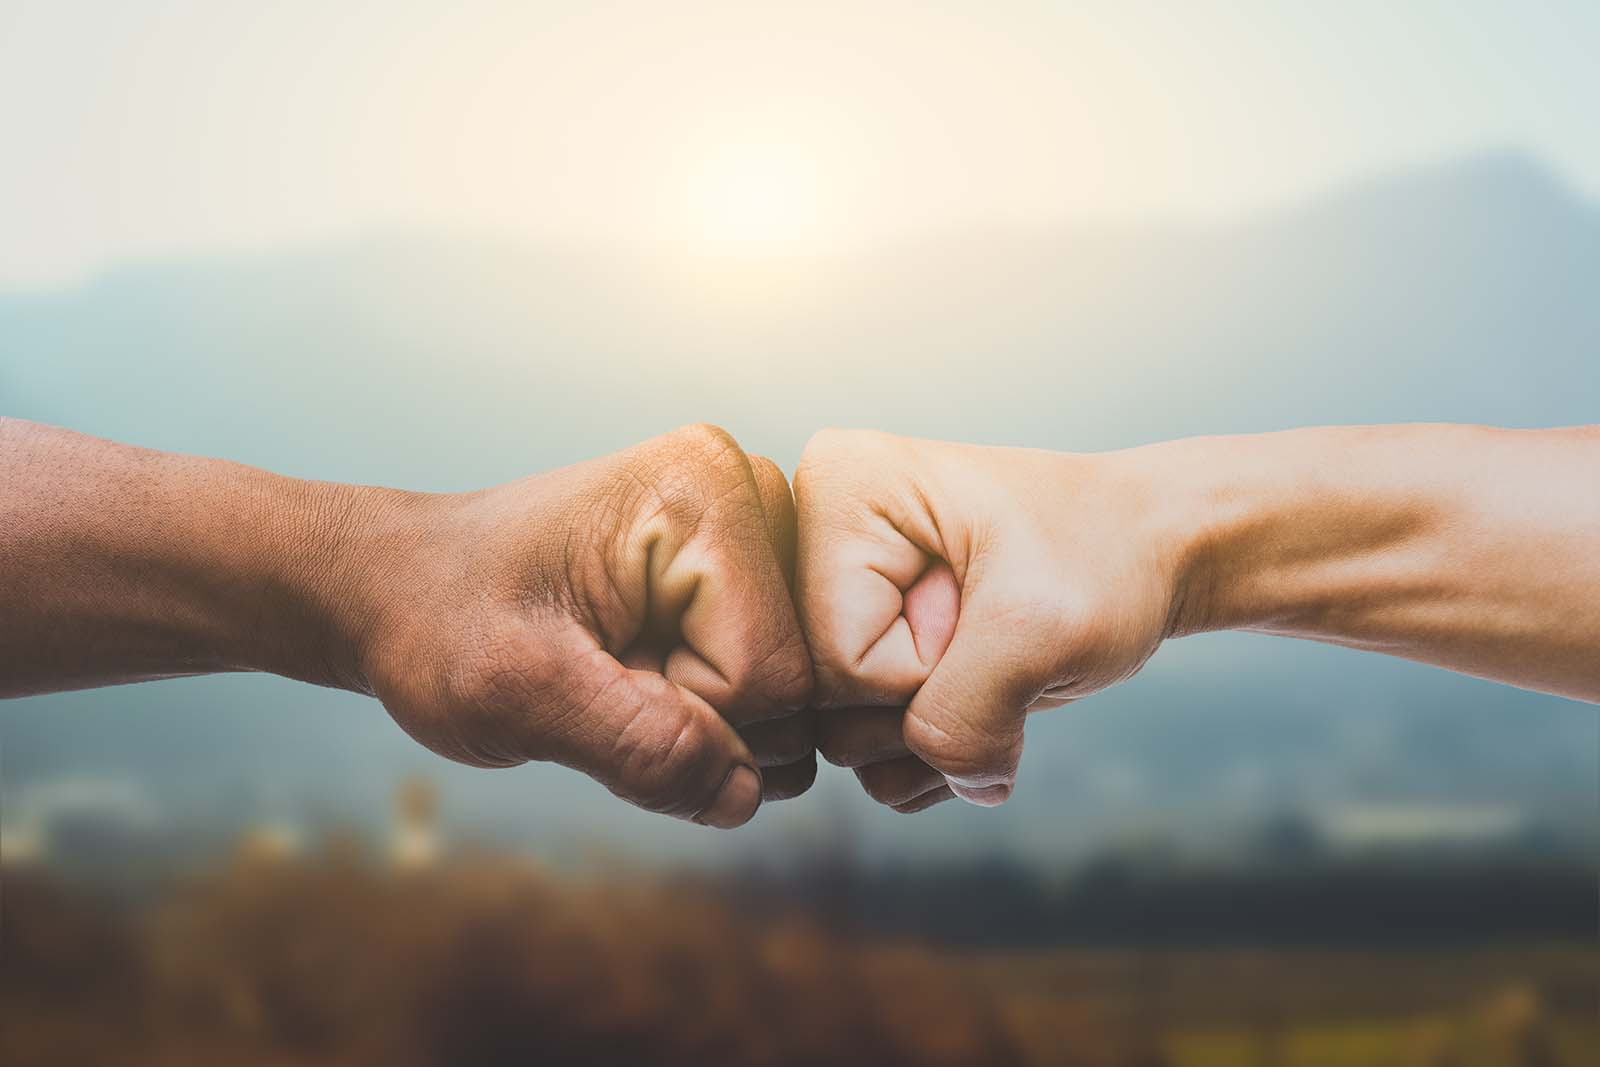 Man giving fist bump in sun rising nature background.